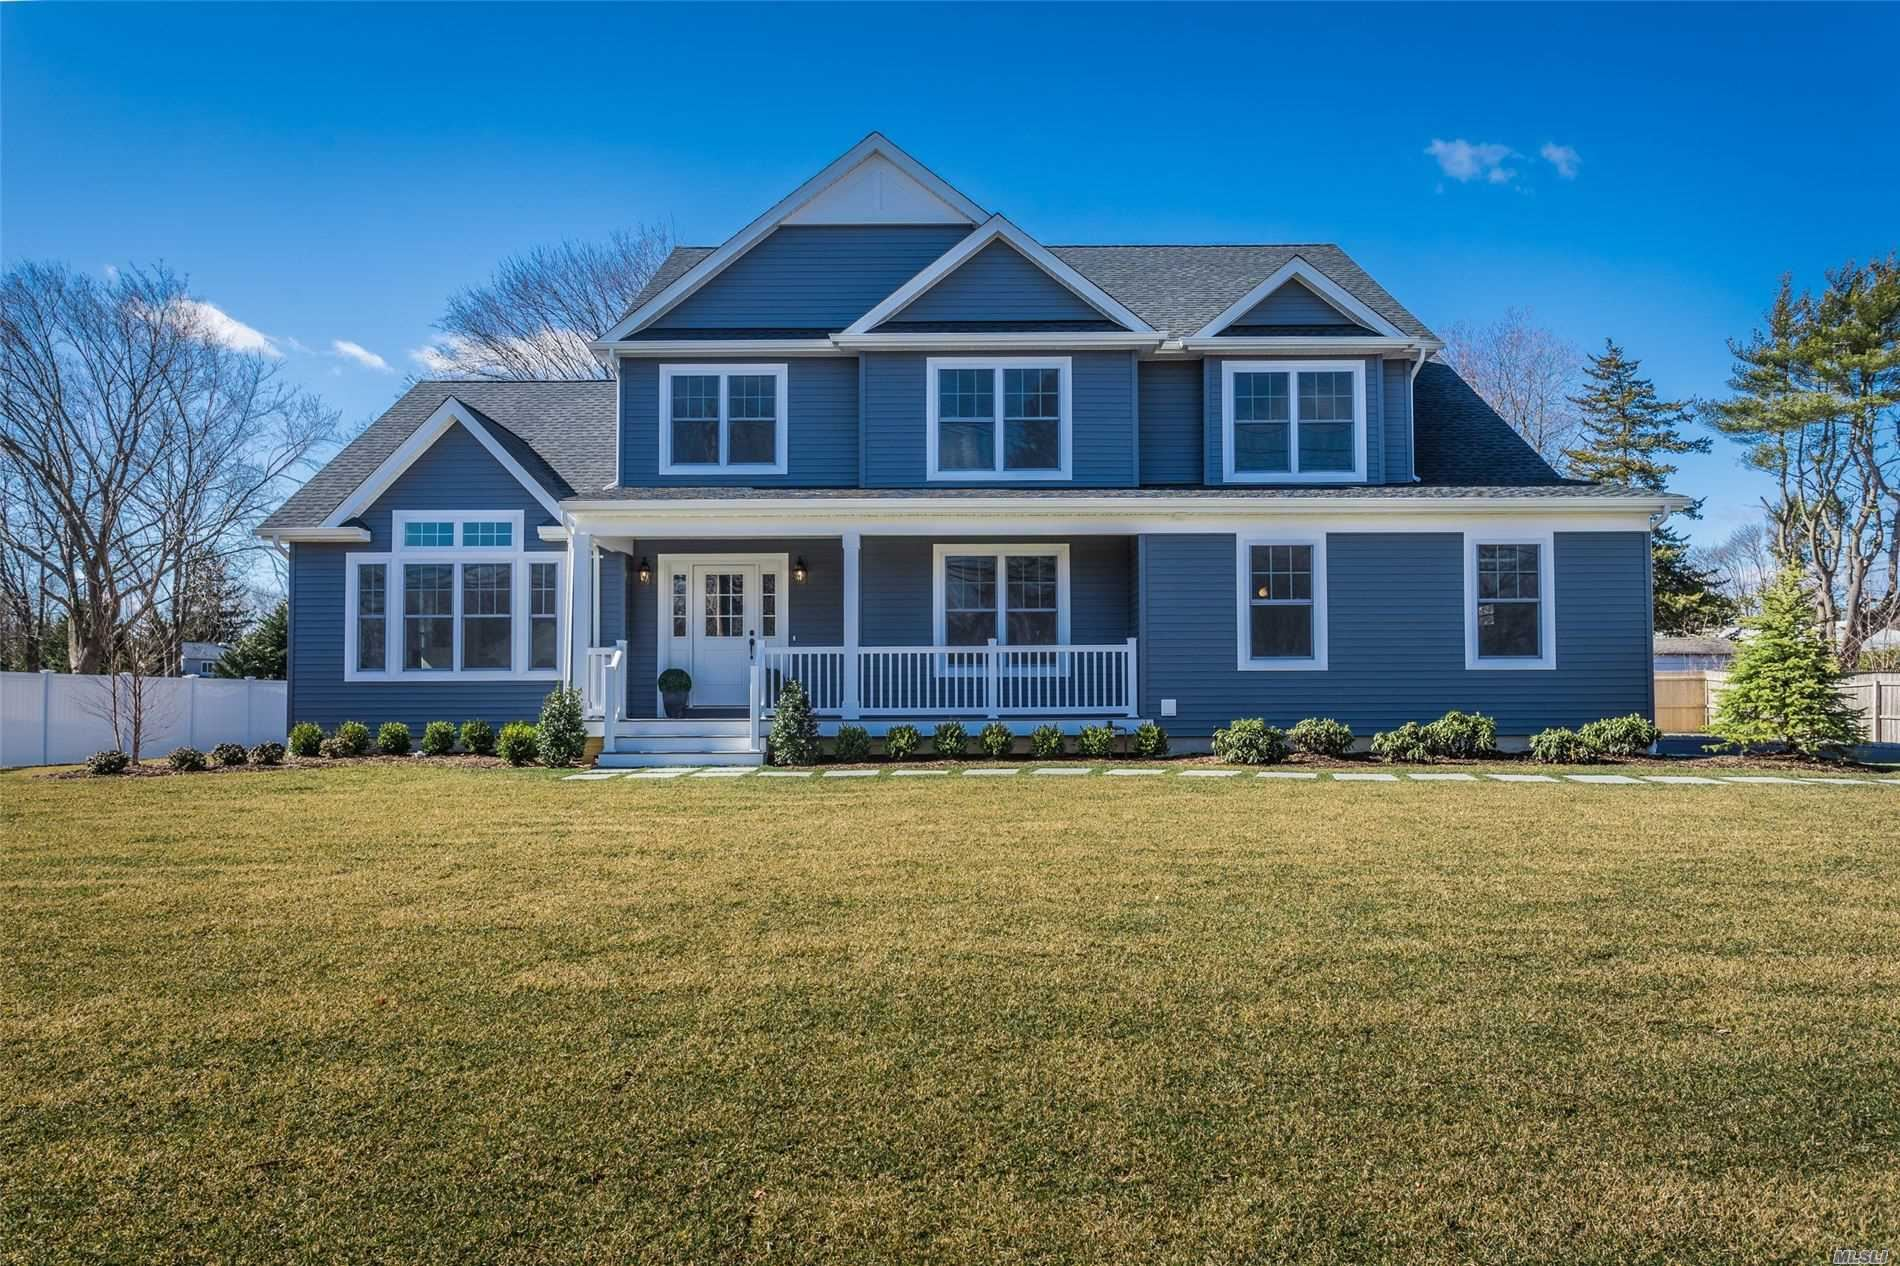 9 Stoothoff Road, East Northport, NY 11731 - MLS#: 3204814